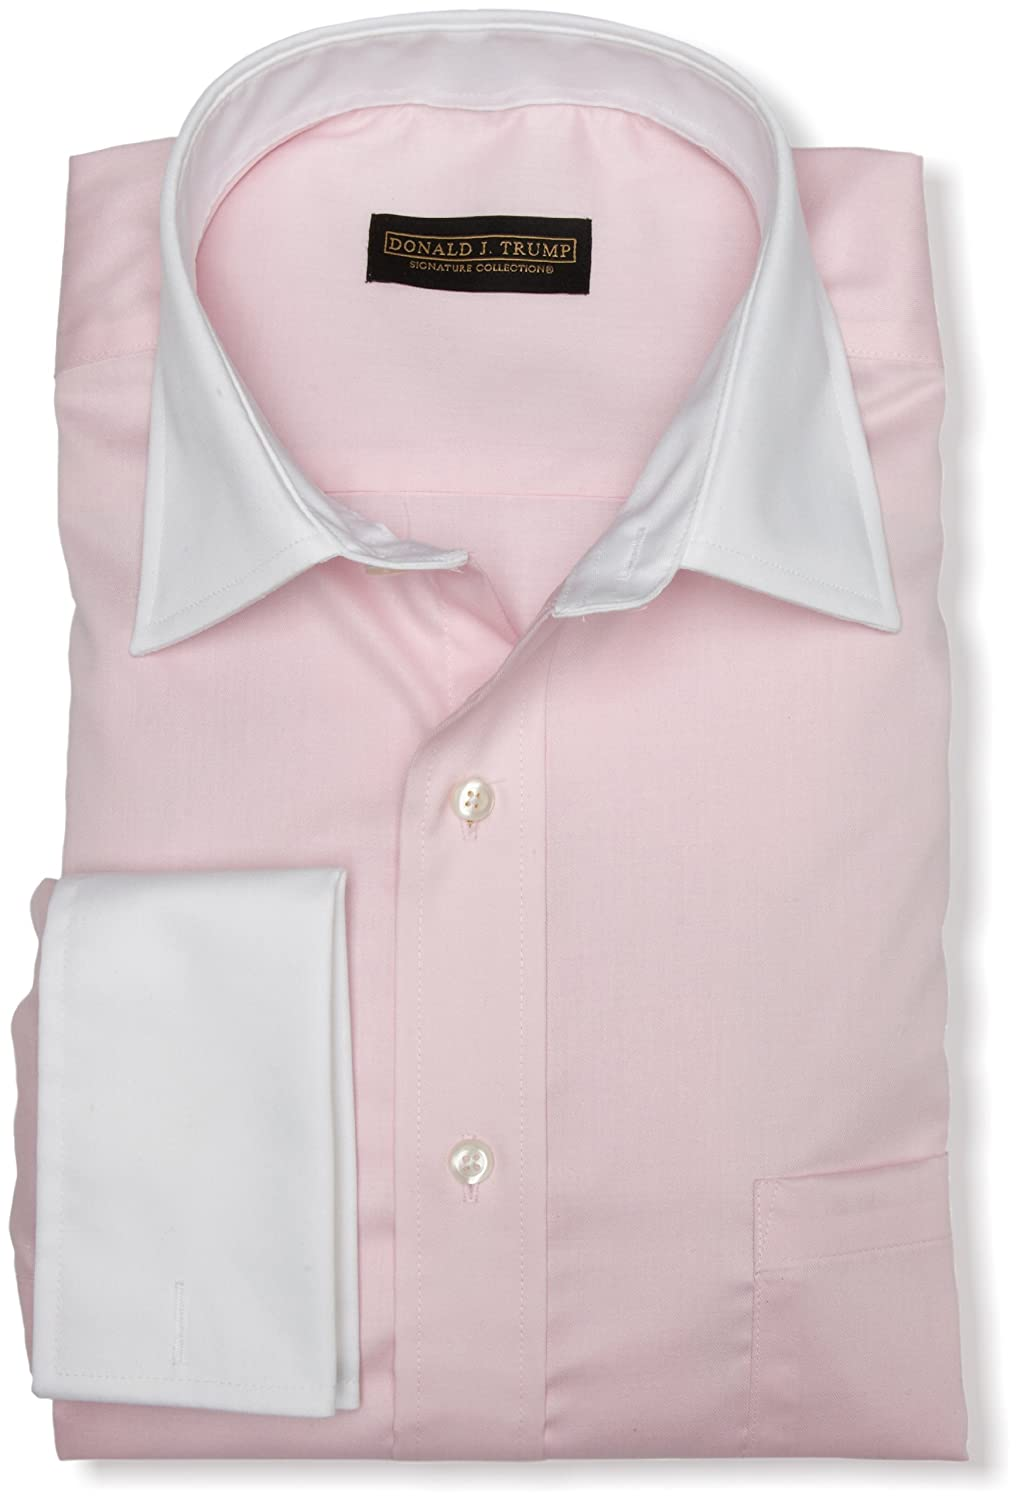 Donald Trump Men's Spread Collar Twill Solid Woven Shirt (Pale Pink)